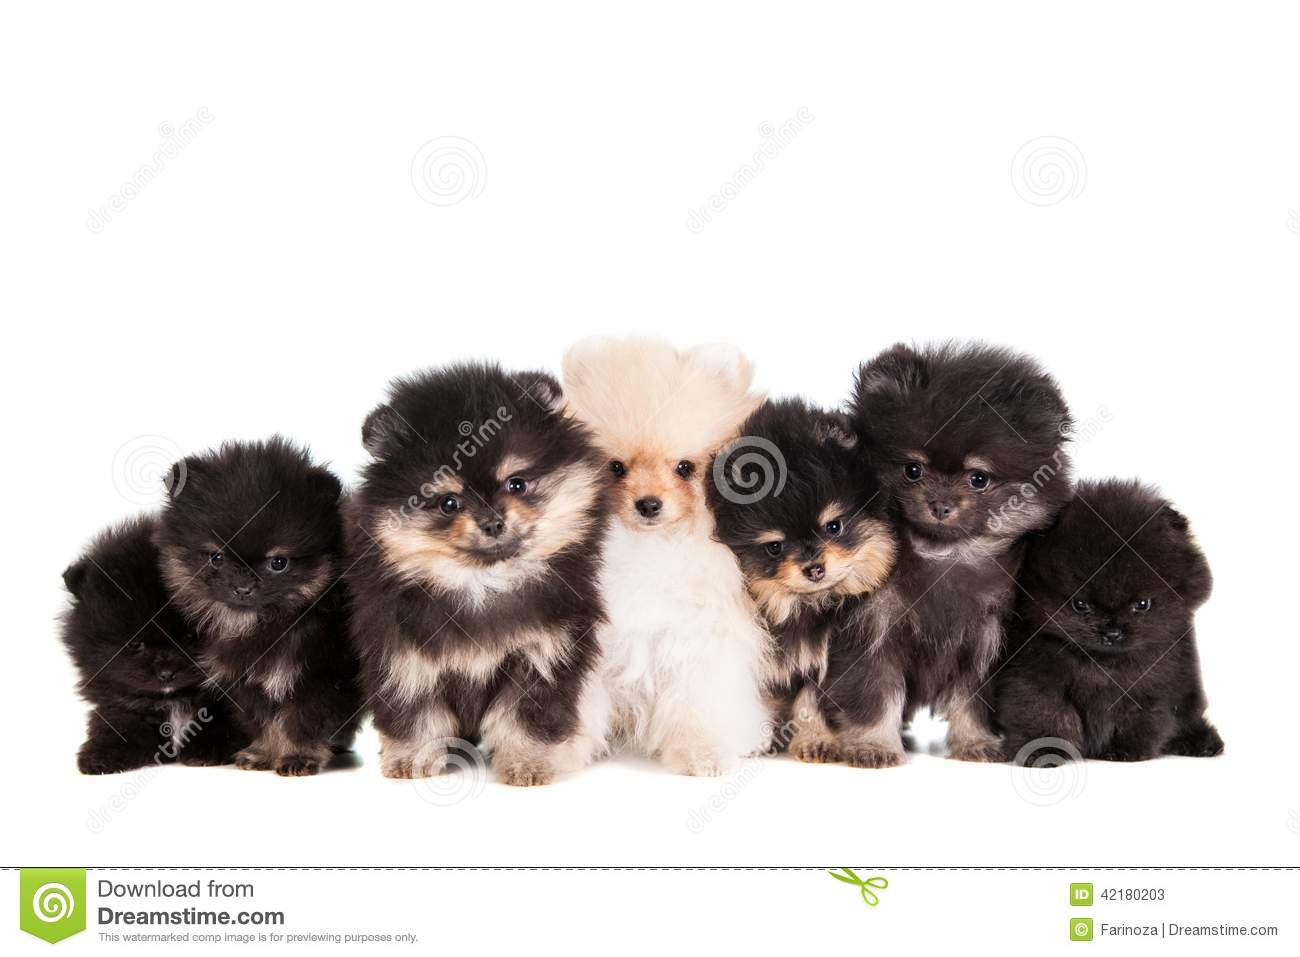 Funny Pomeranian Puppies Group Stock Photo - Image: 42180203